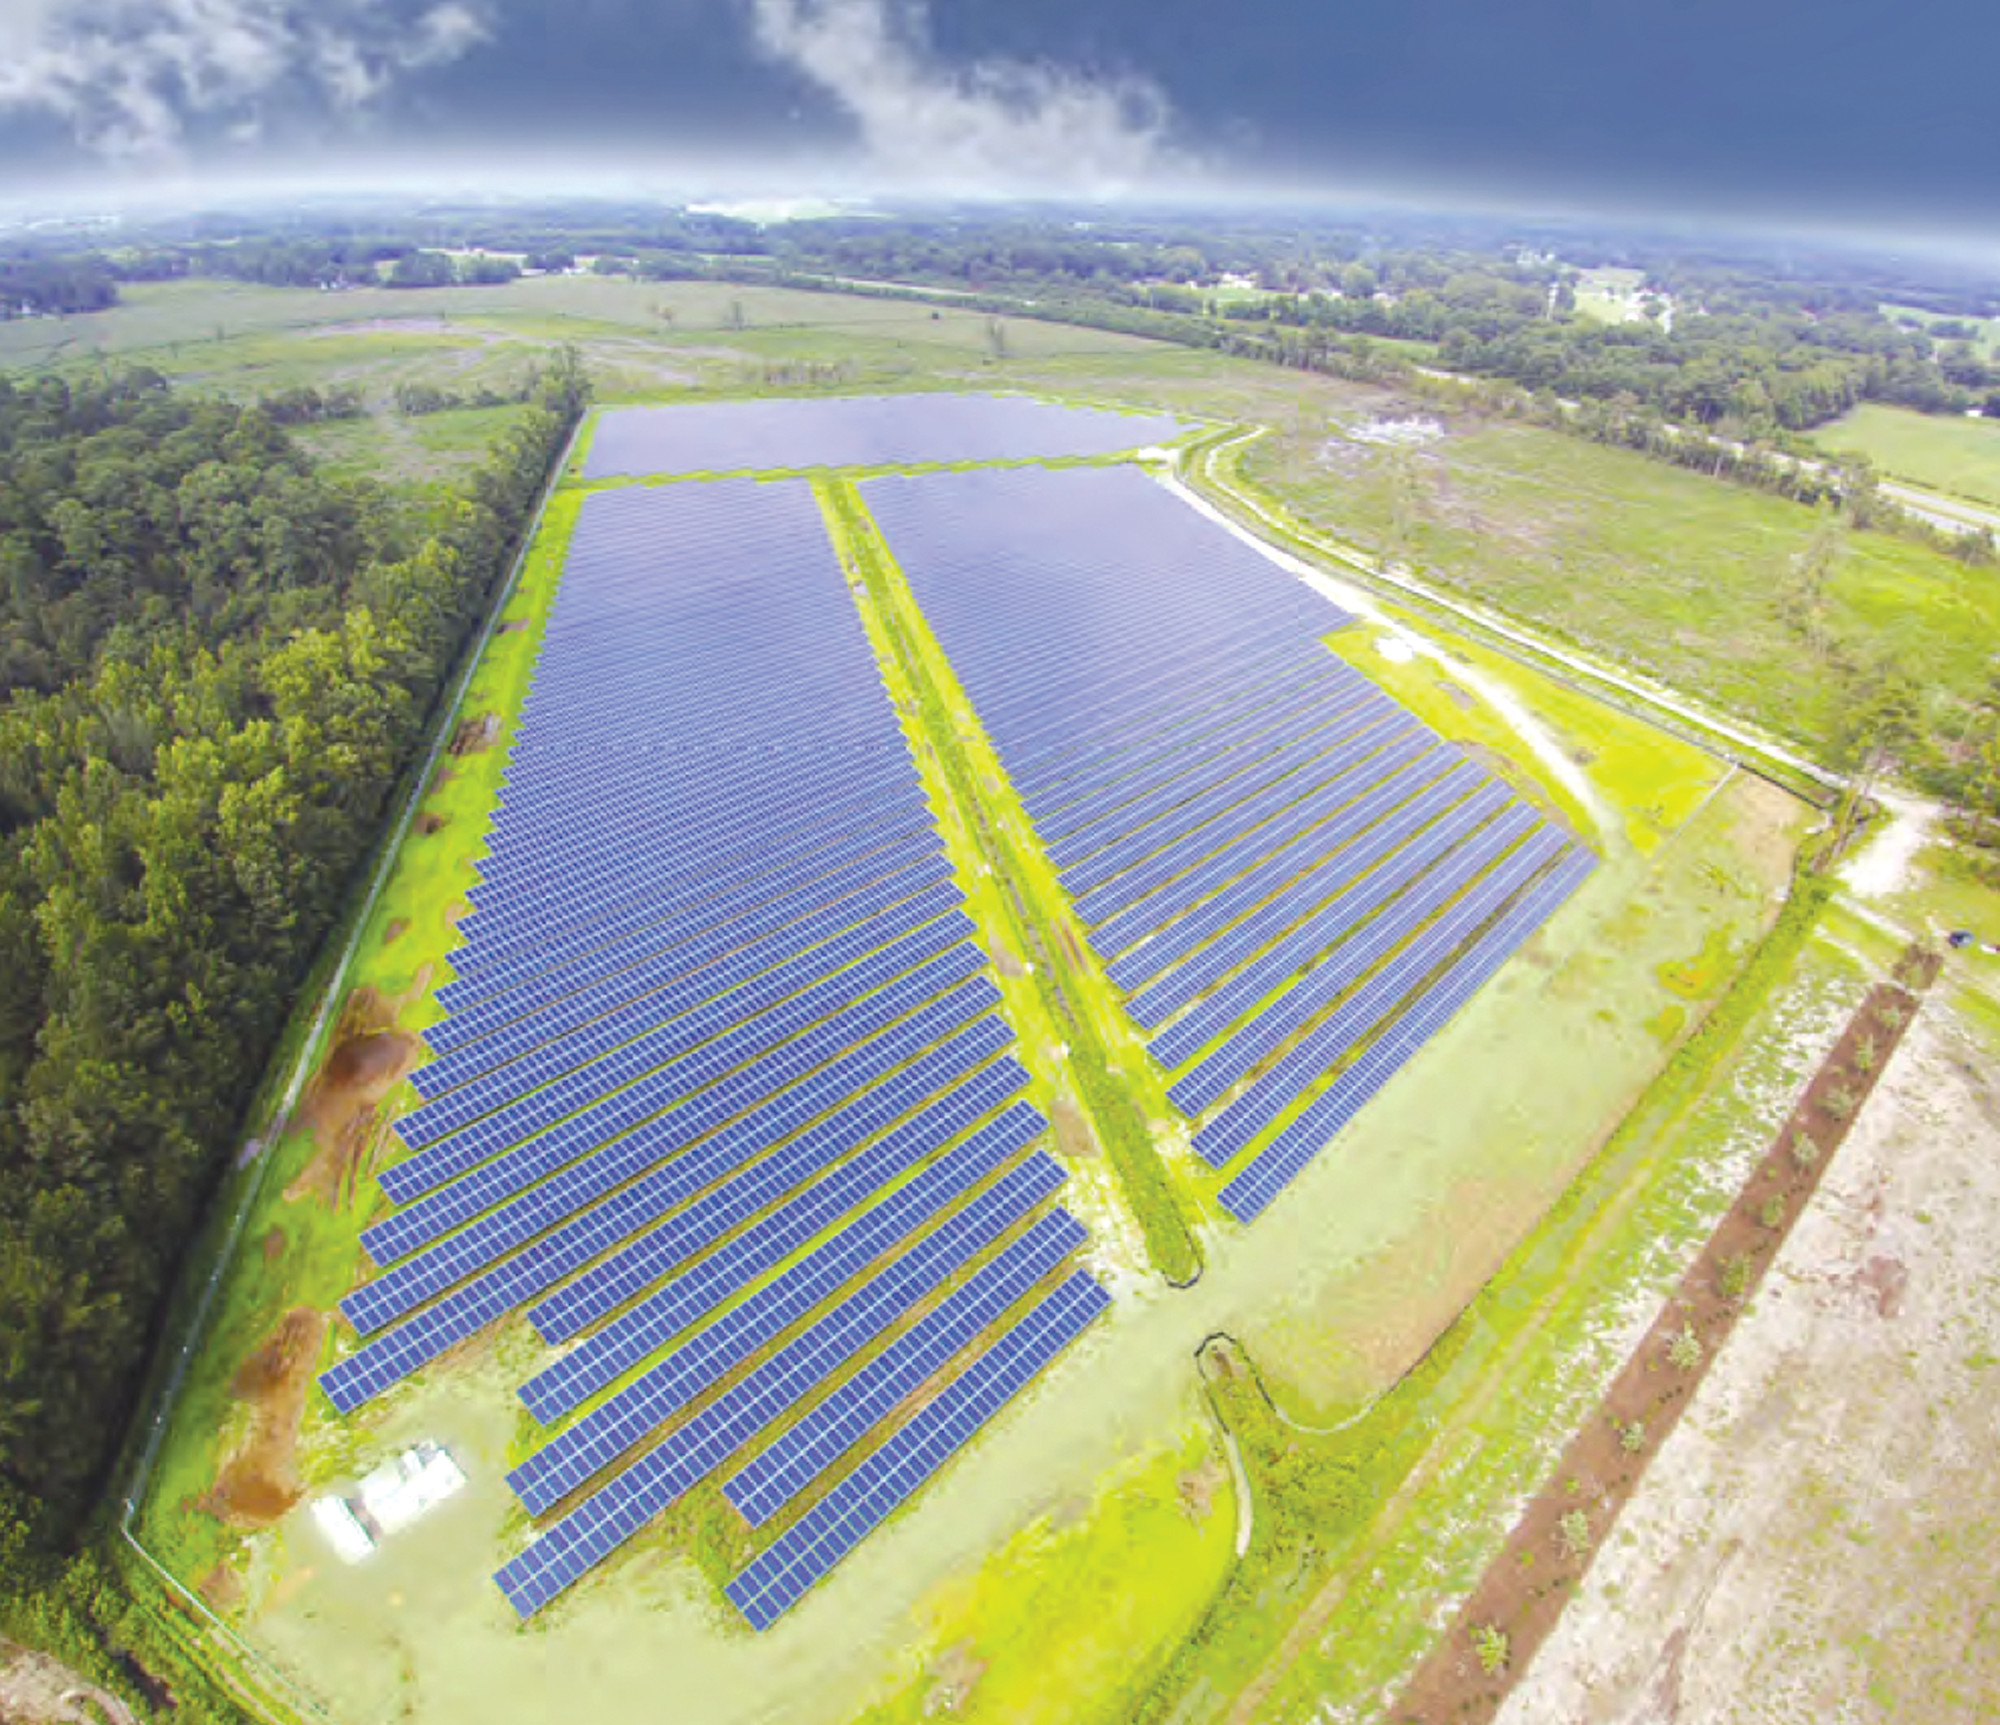 A solar farm built by Southern Current and co-developed by Strata Solar on 40 acres is seen in Goldsboro, North Carolina. Southern Current will invest $100 million in six solar farm developments in Lee County.